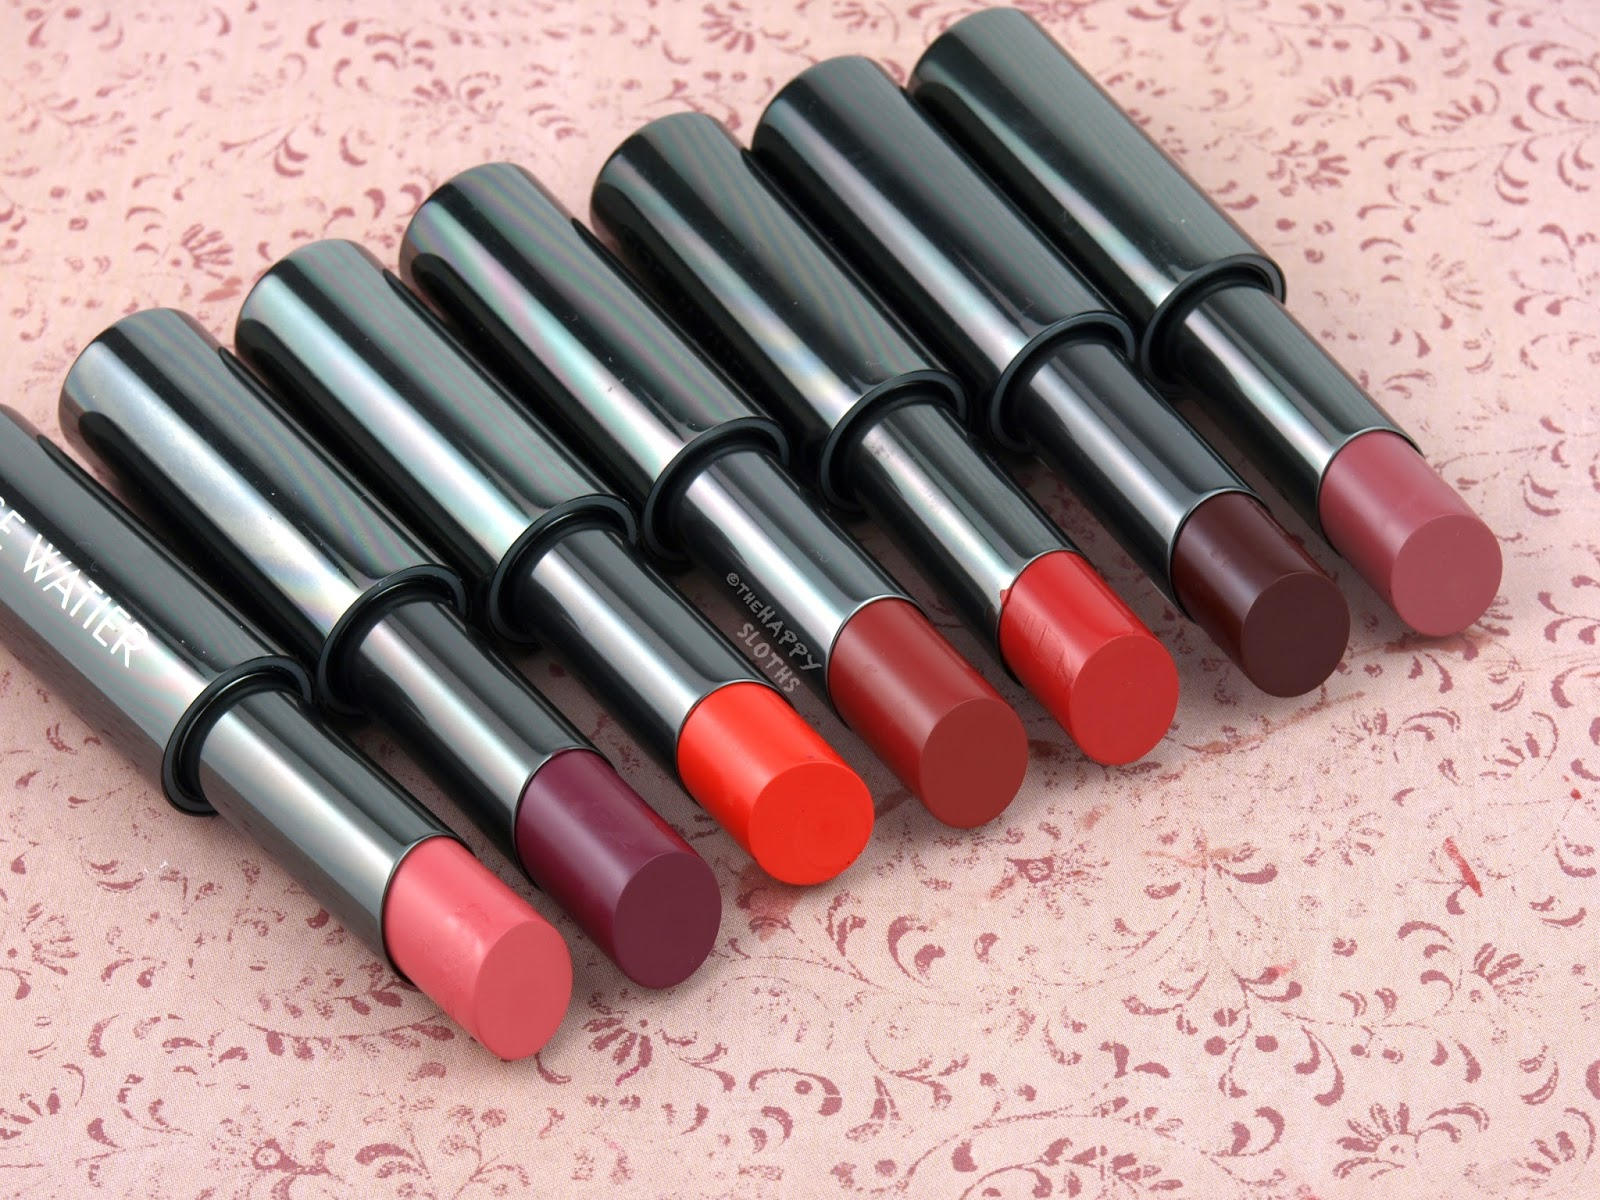 Lise Watier Rouge Intense Supreme Lipstick: Review and Swatches